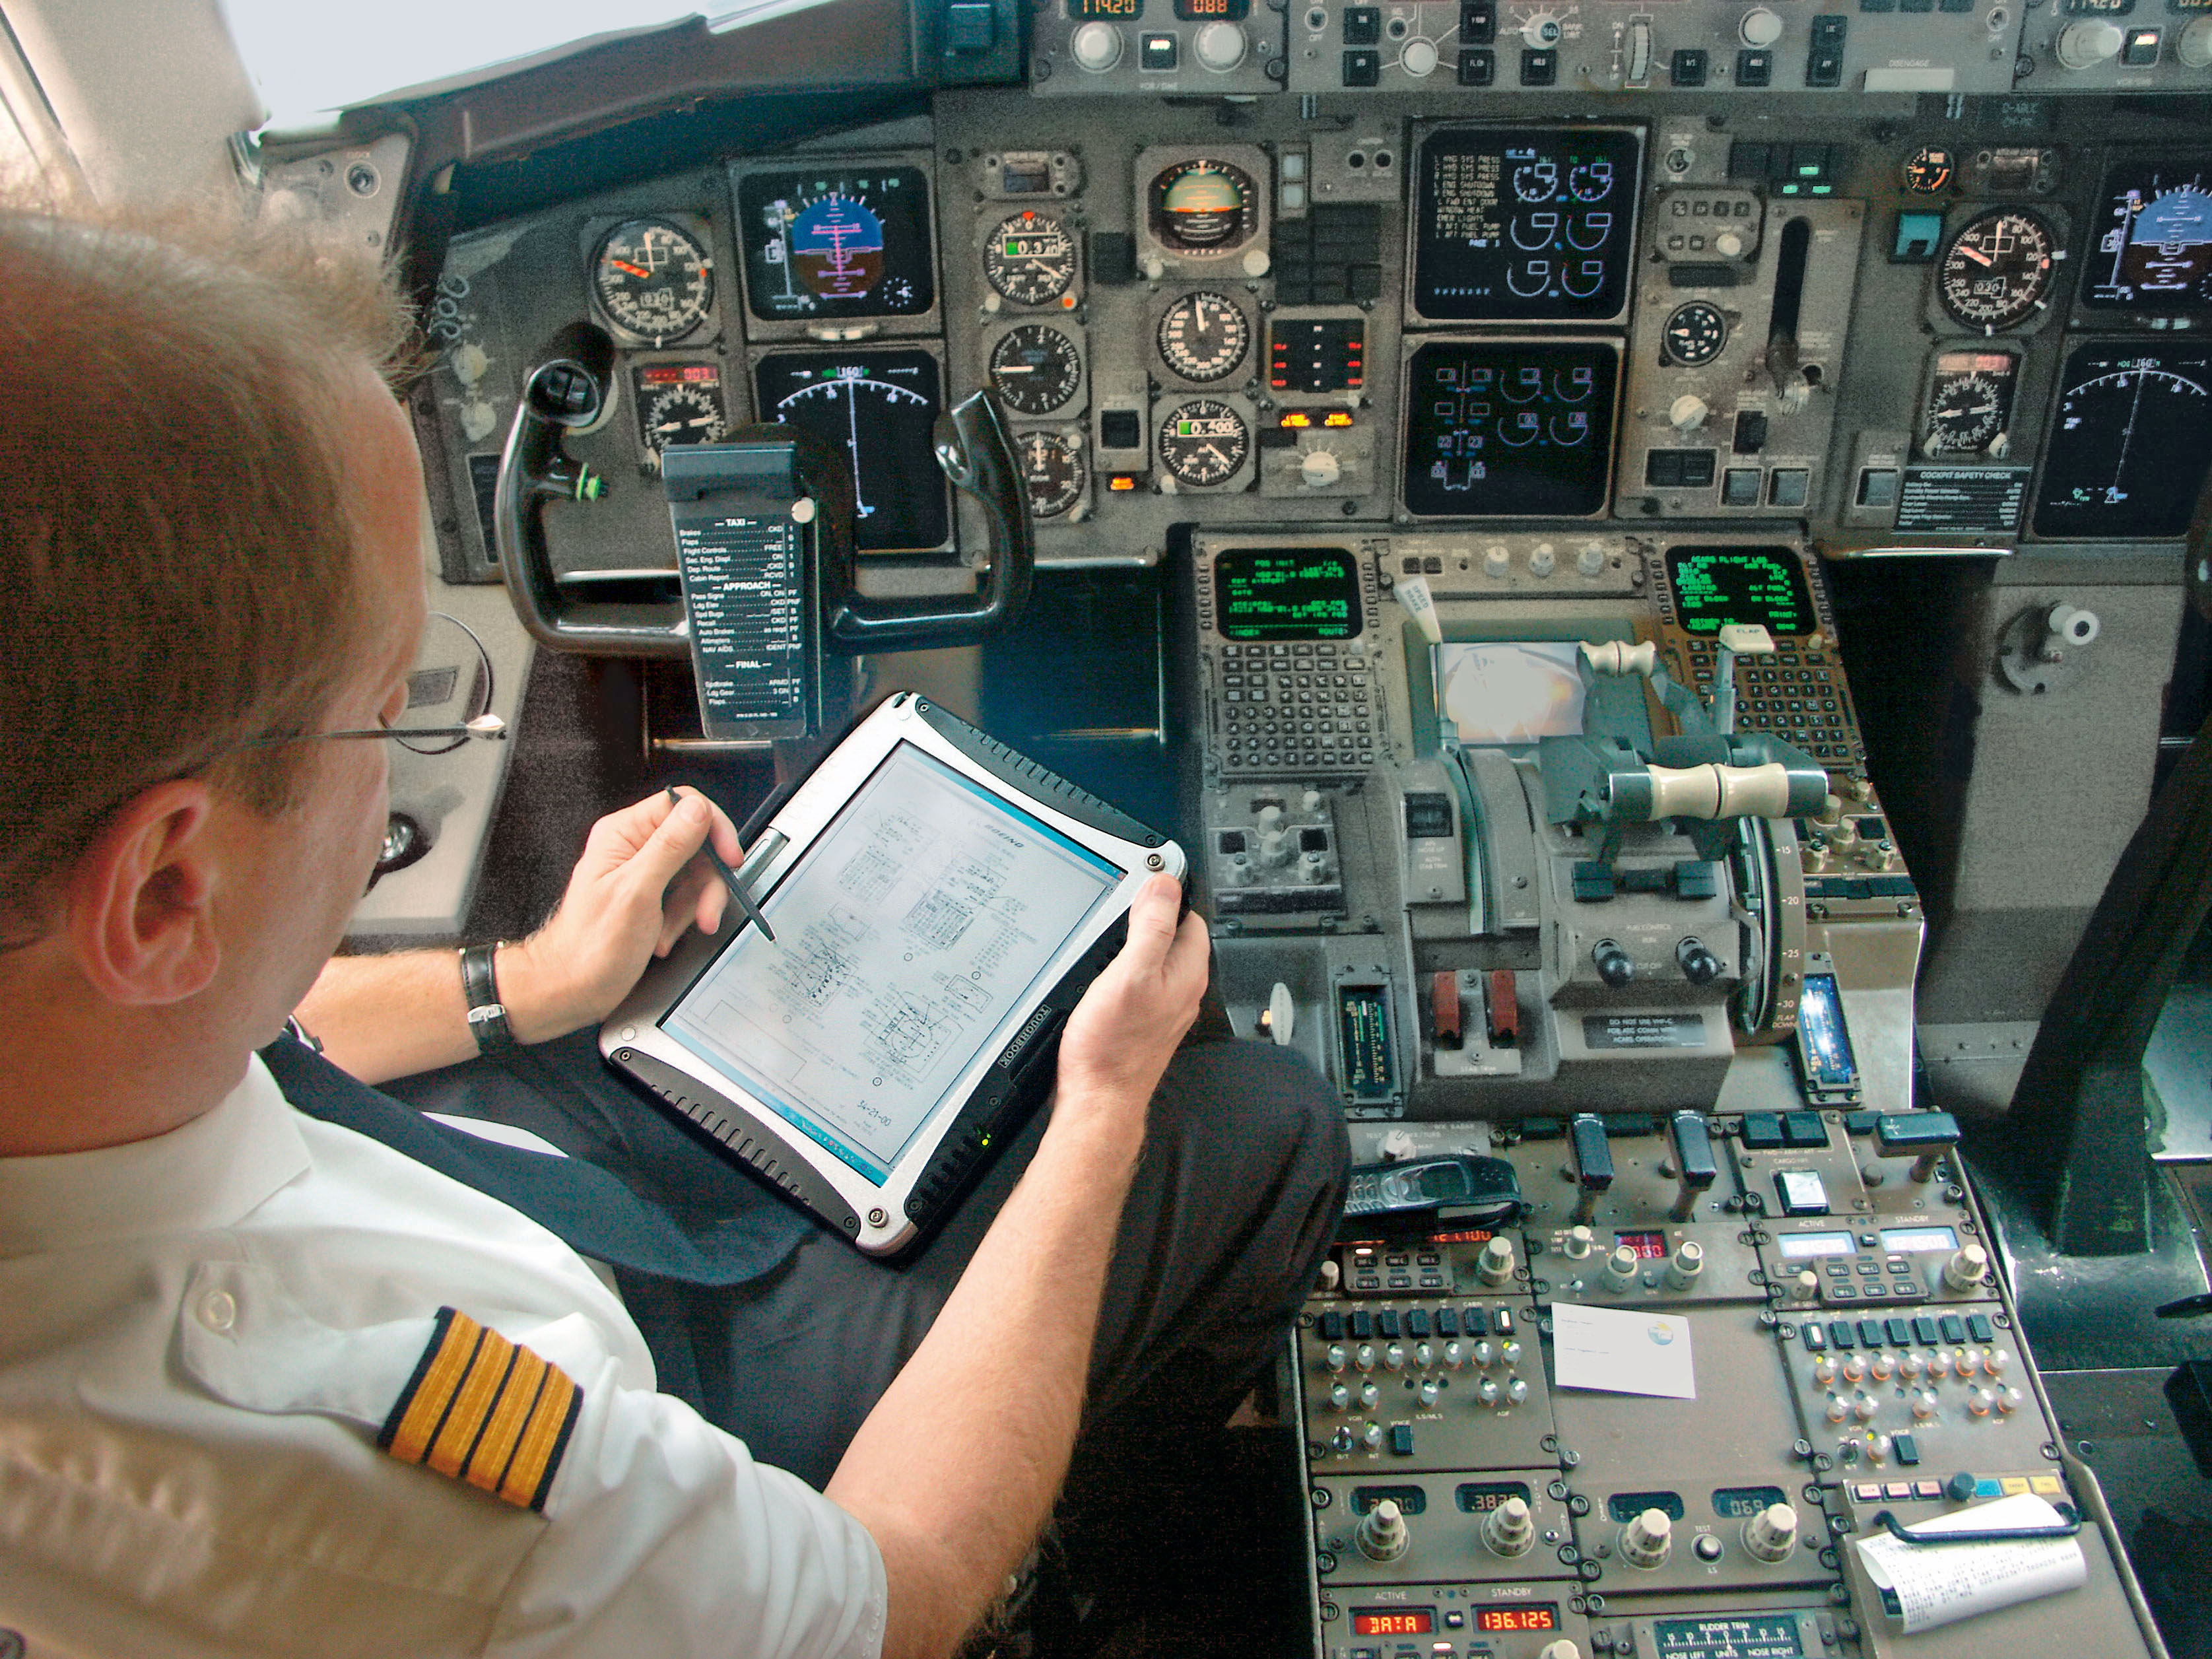 Ruggedized tablet in an aircraft cockpit.